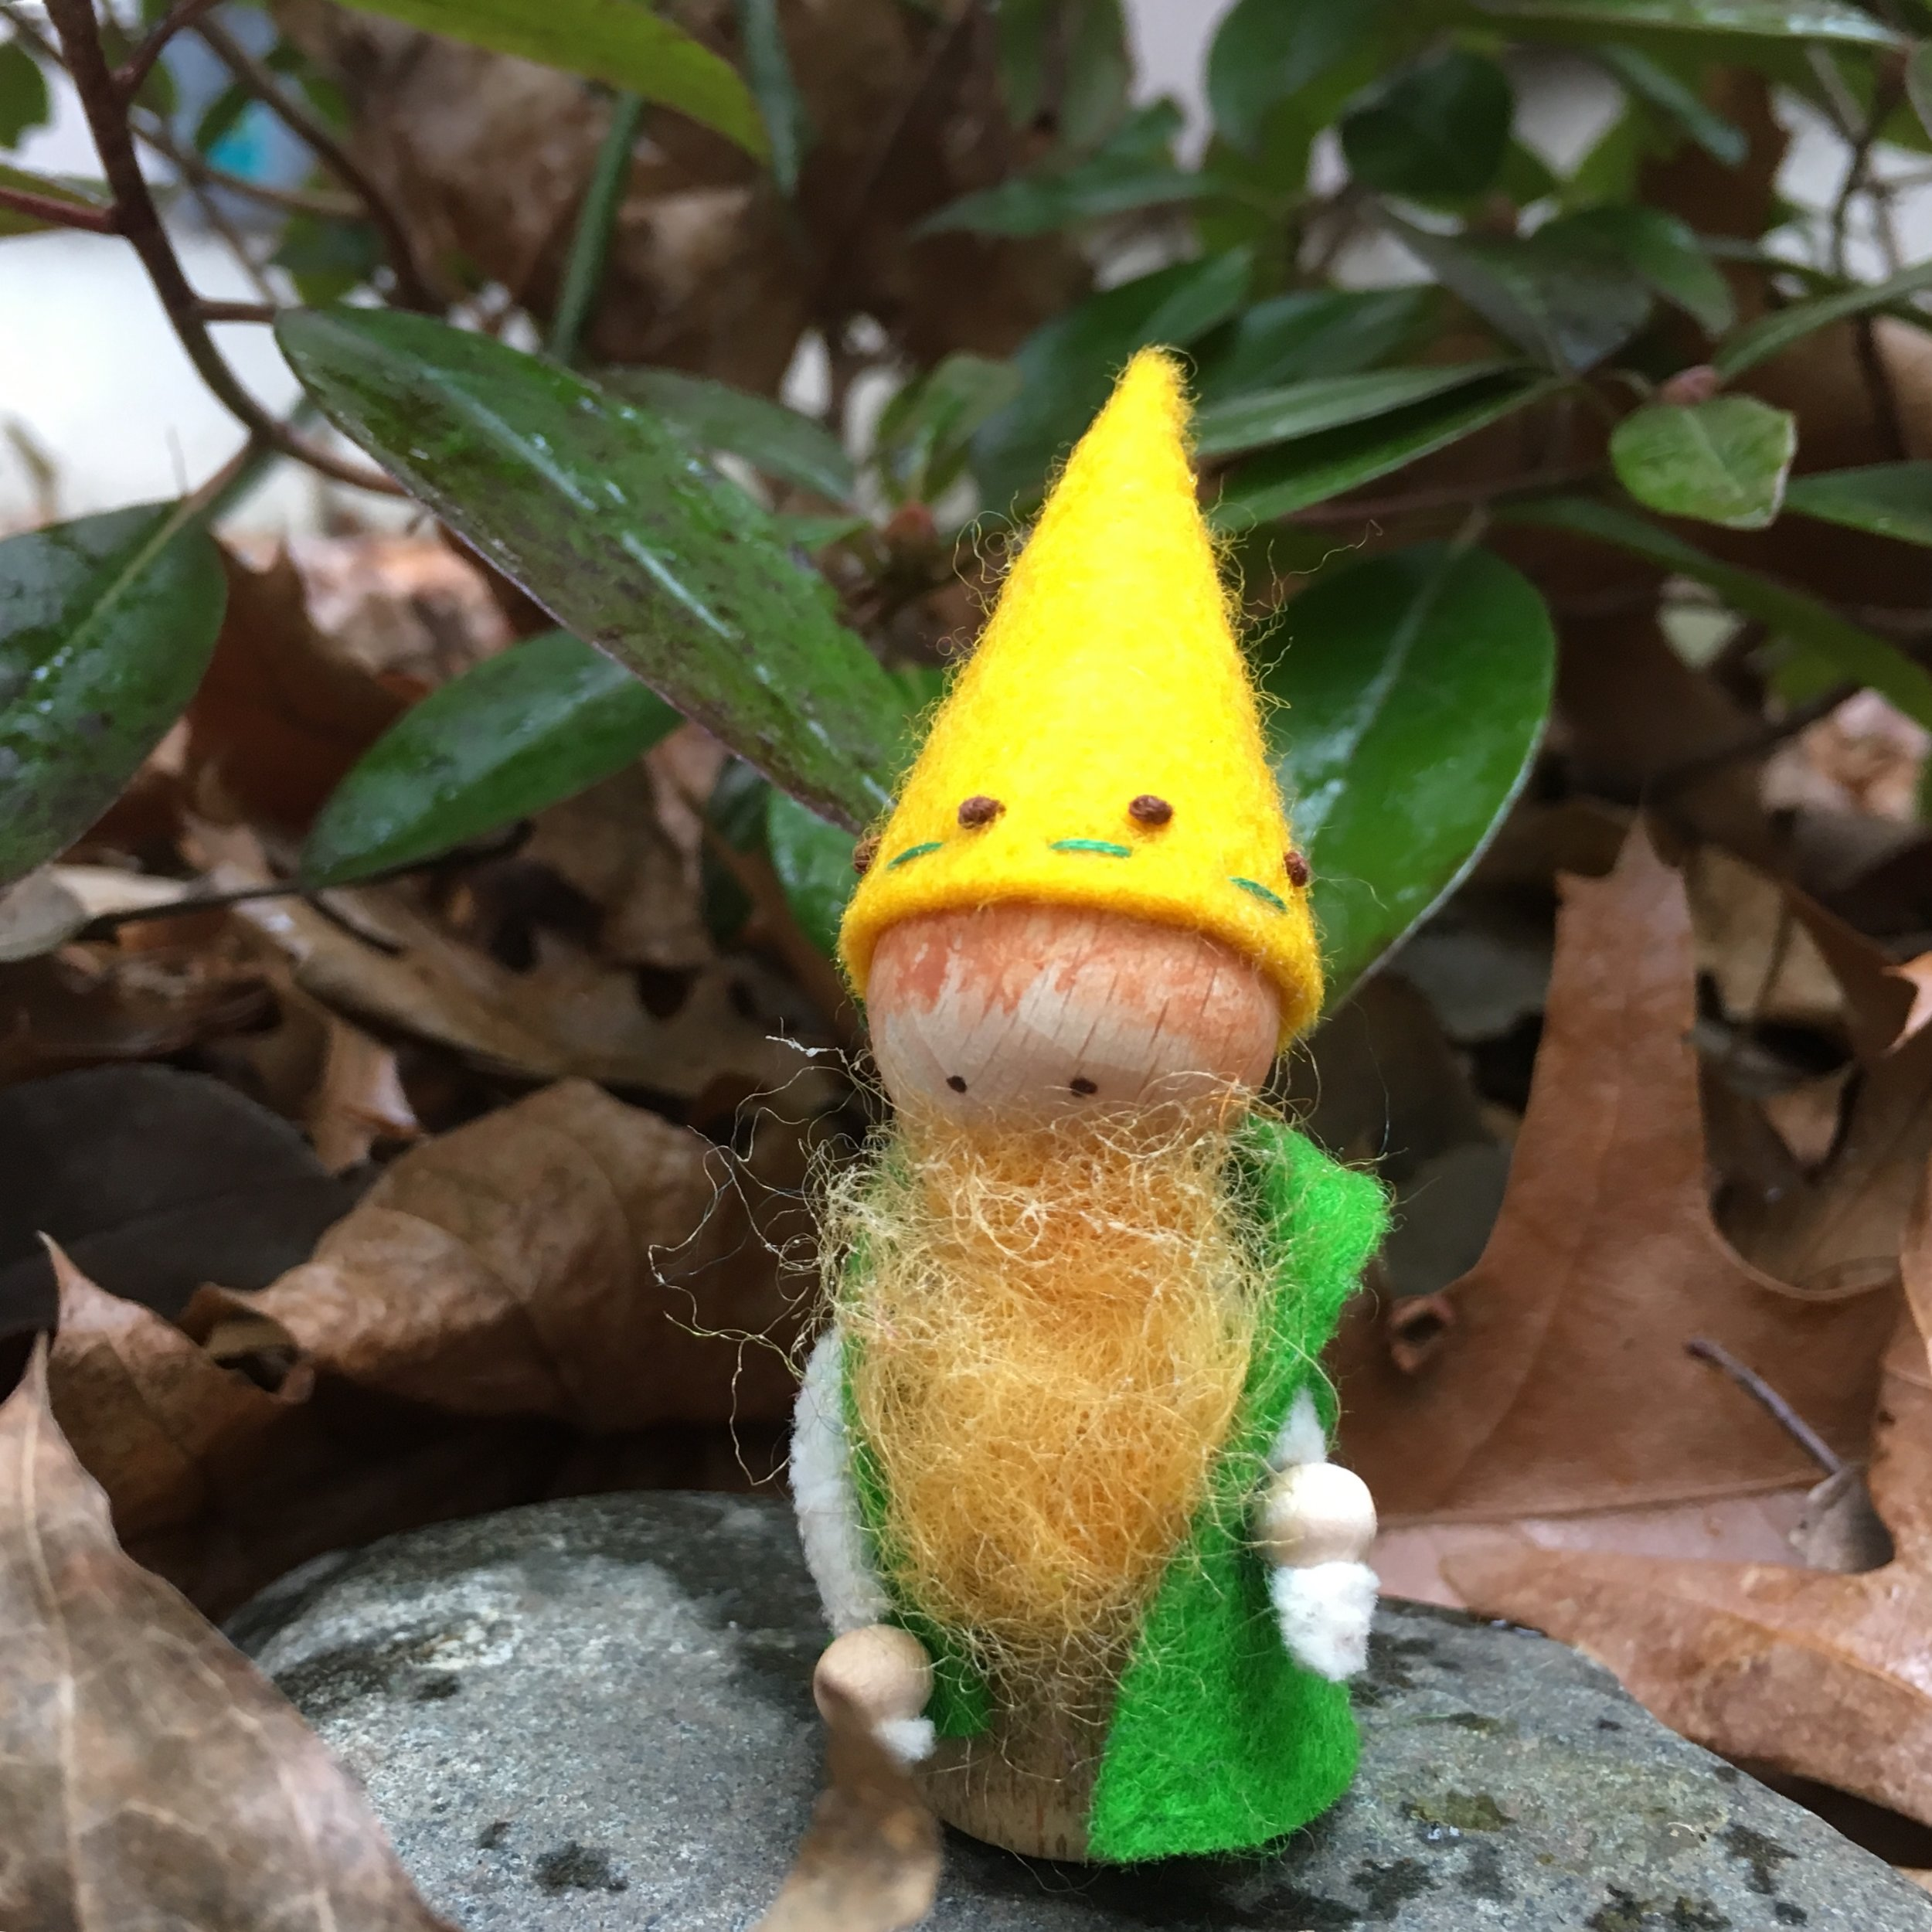 The Ginger Gnome, 2 3/4 inches